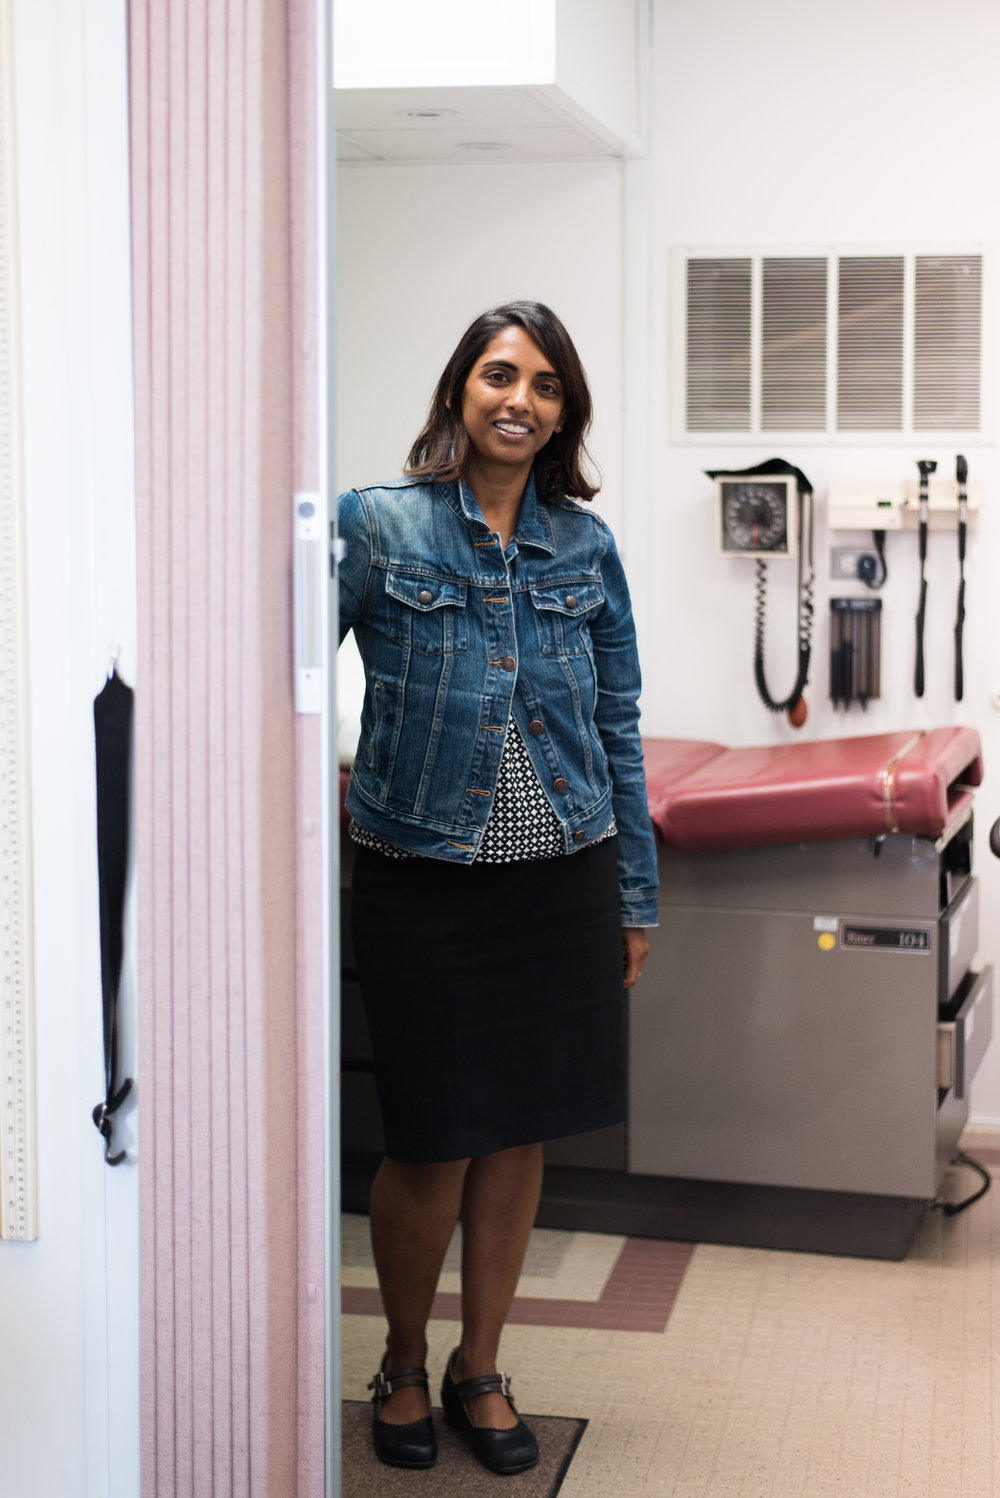 Dr. Shireesha Dhanireddy,  photo by Grace Beck.